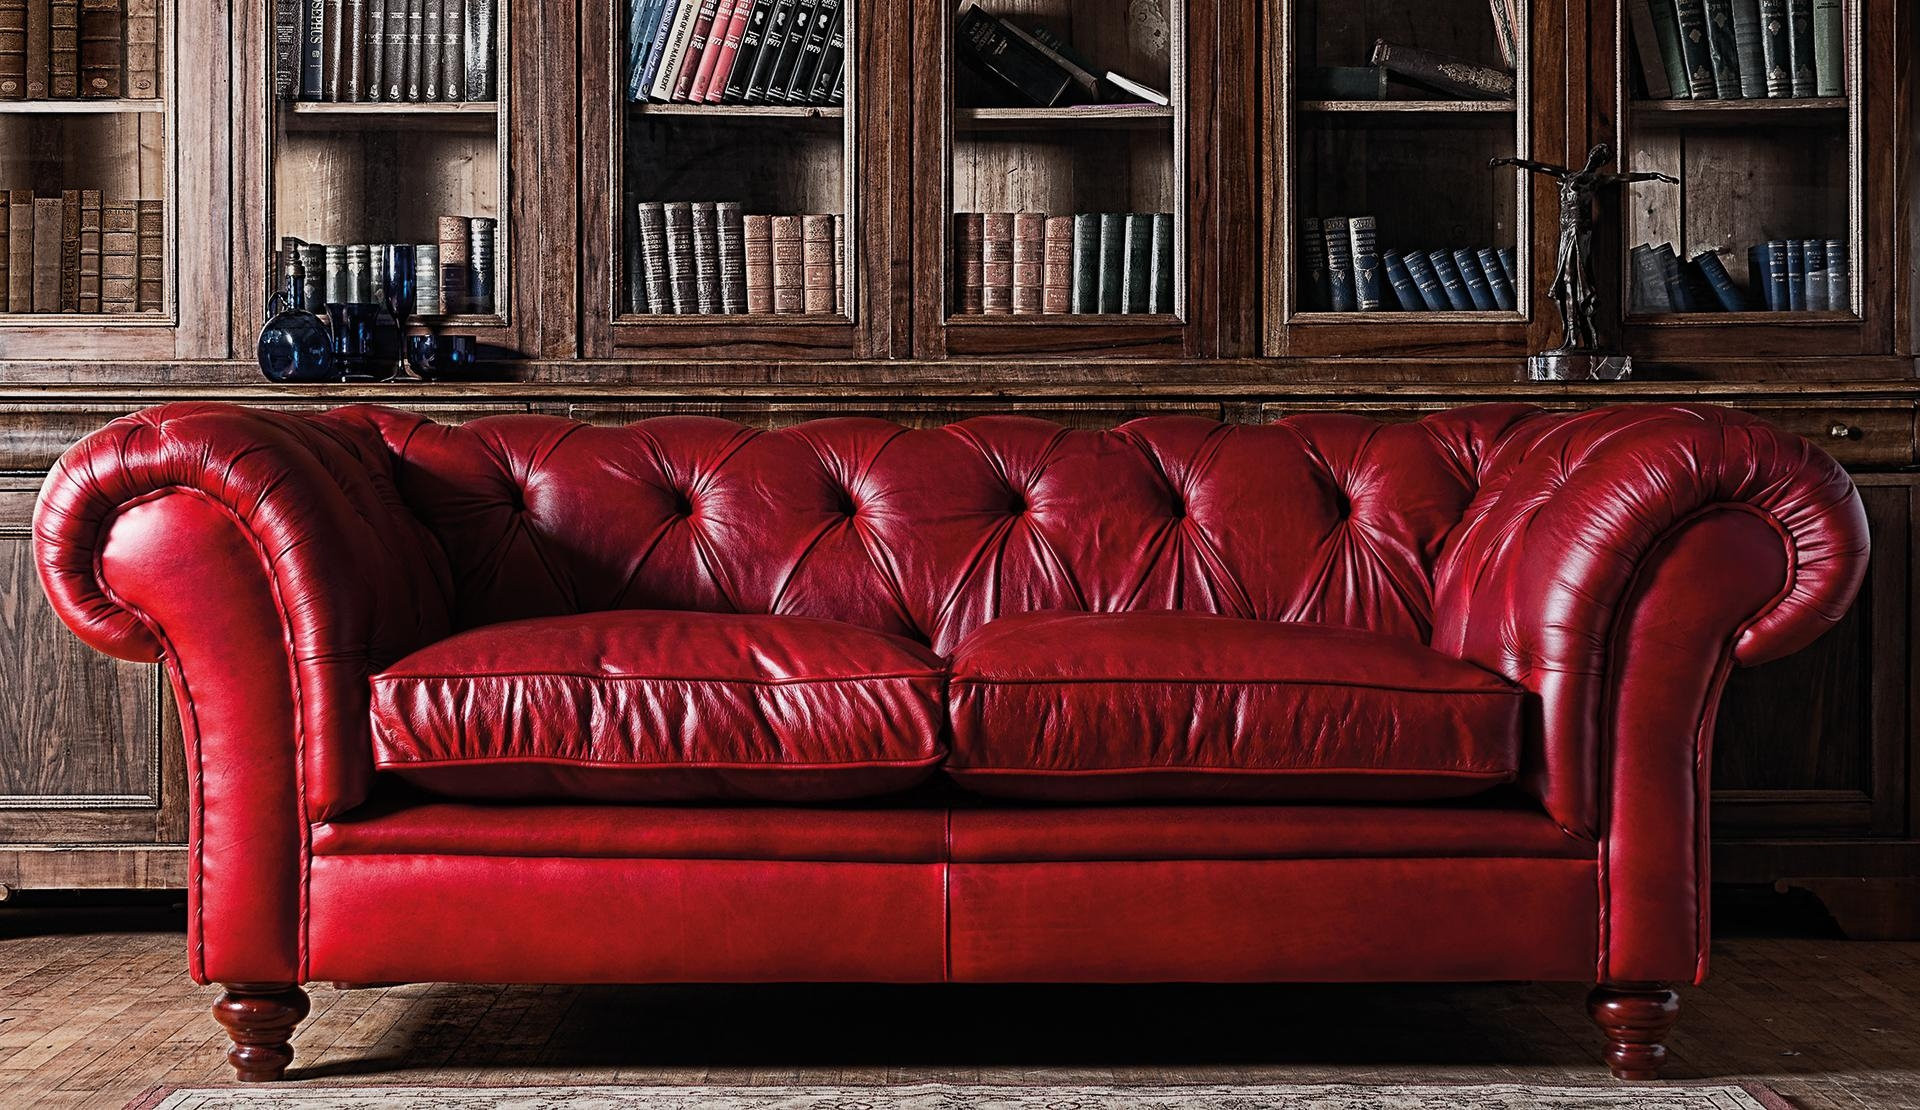 Red Leather Chesterfield Sofa | Sofa Gallery | Kengire In Red Chesterfield Sofas (View 3 of 20)